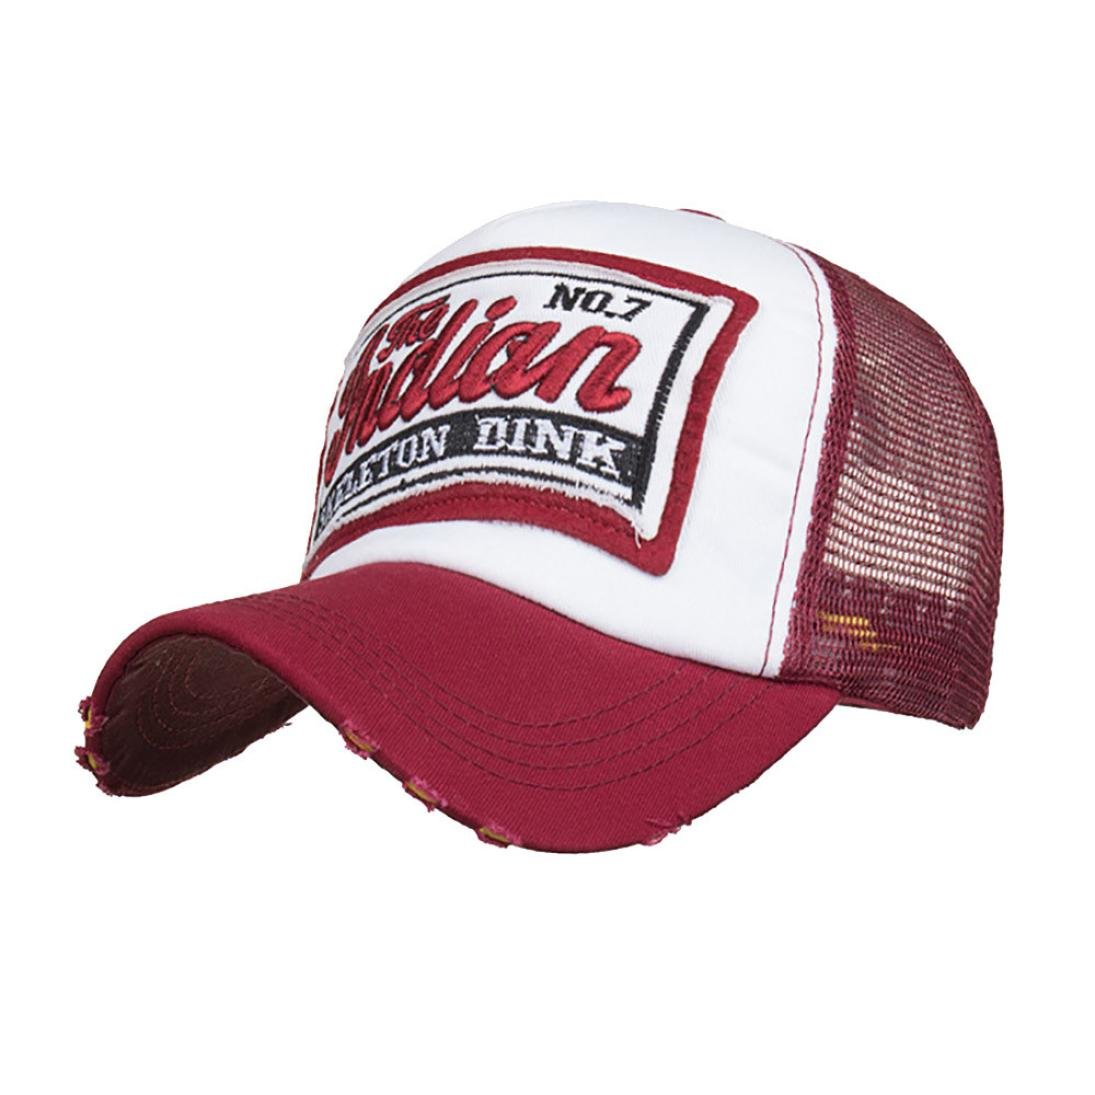 WOCACHI Hats And Caps Embroidered Summer Cap Mesh Hats Hip Hop Baseball Caps US-Y5765846673